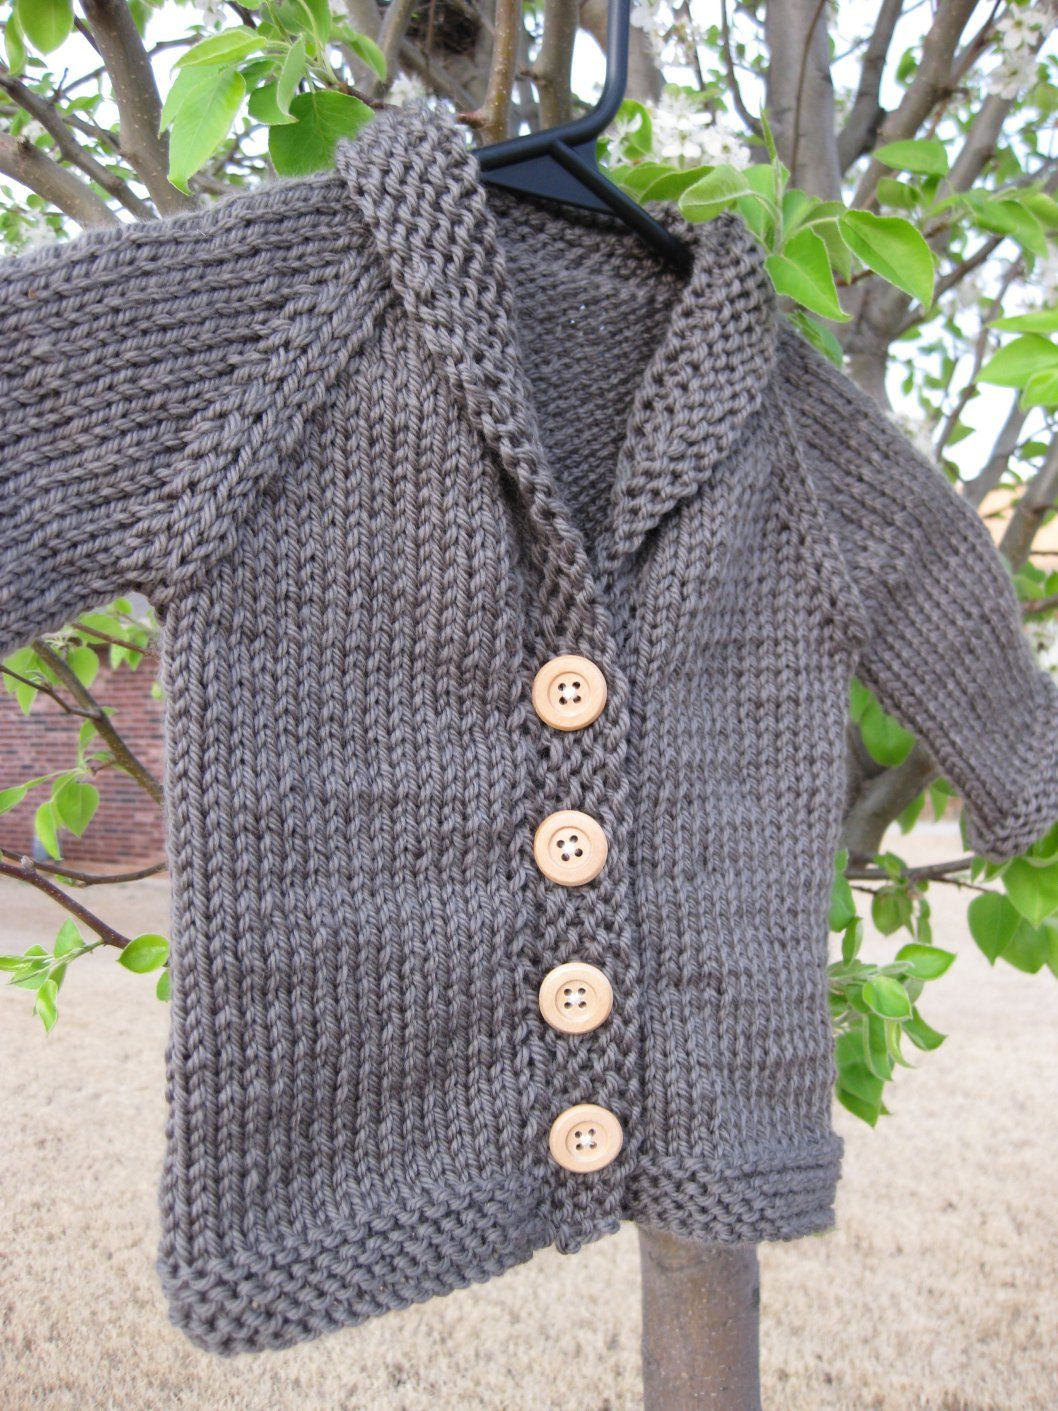 Baby Sophisticate Sweater Free Knitting Pattern | Crafts & Patterns ...